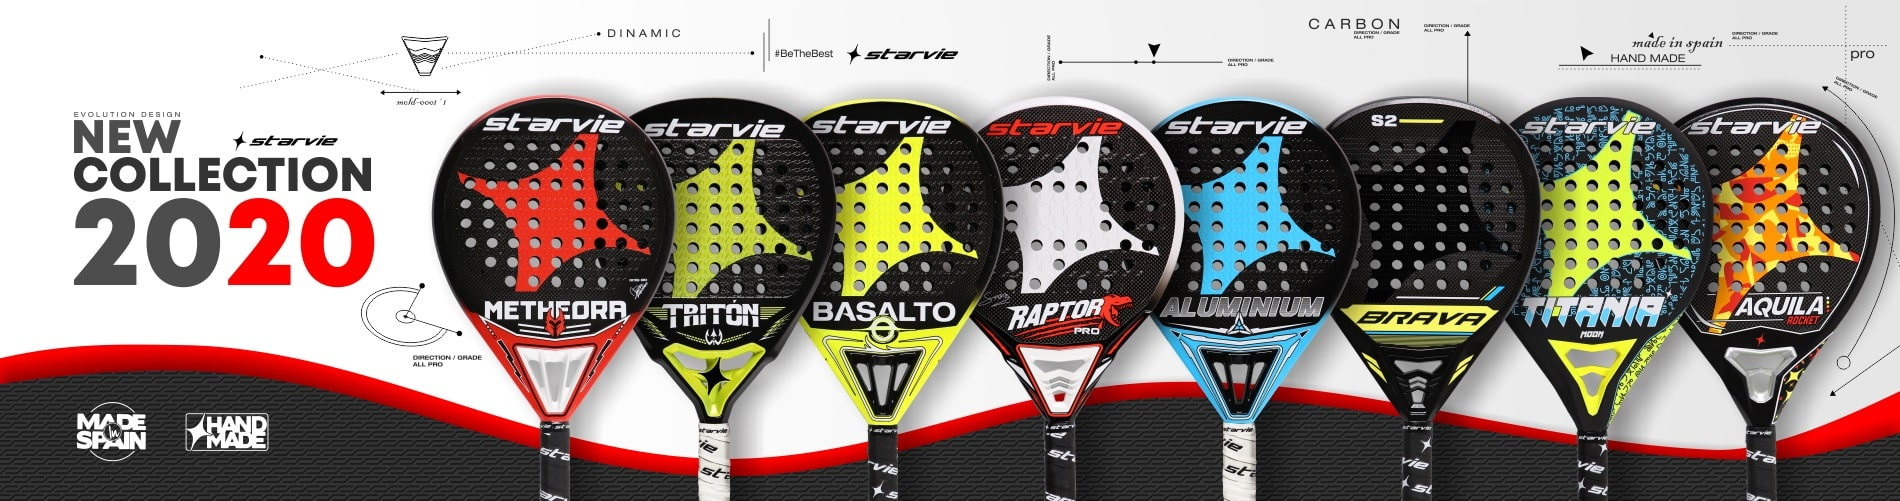 Padel Rackets - Collection 2020 - StarVie